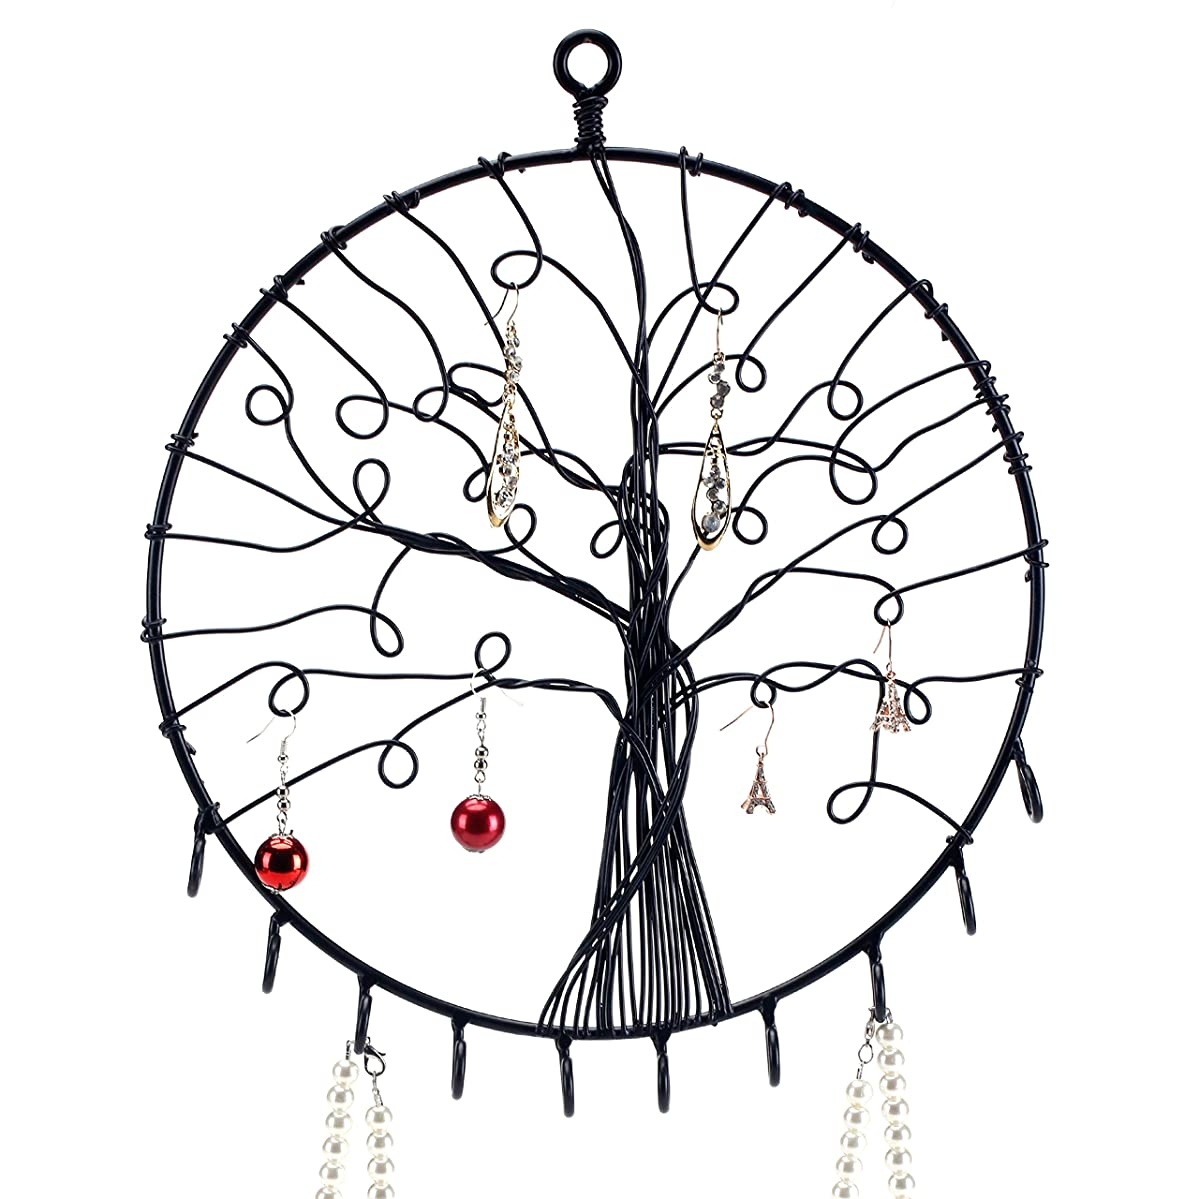 MyGift Wall Hanging Round Metal Tree Silhouette Design Jewelry Holder, Earrings and Necklace Hooks, Black